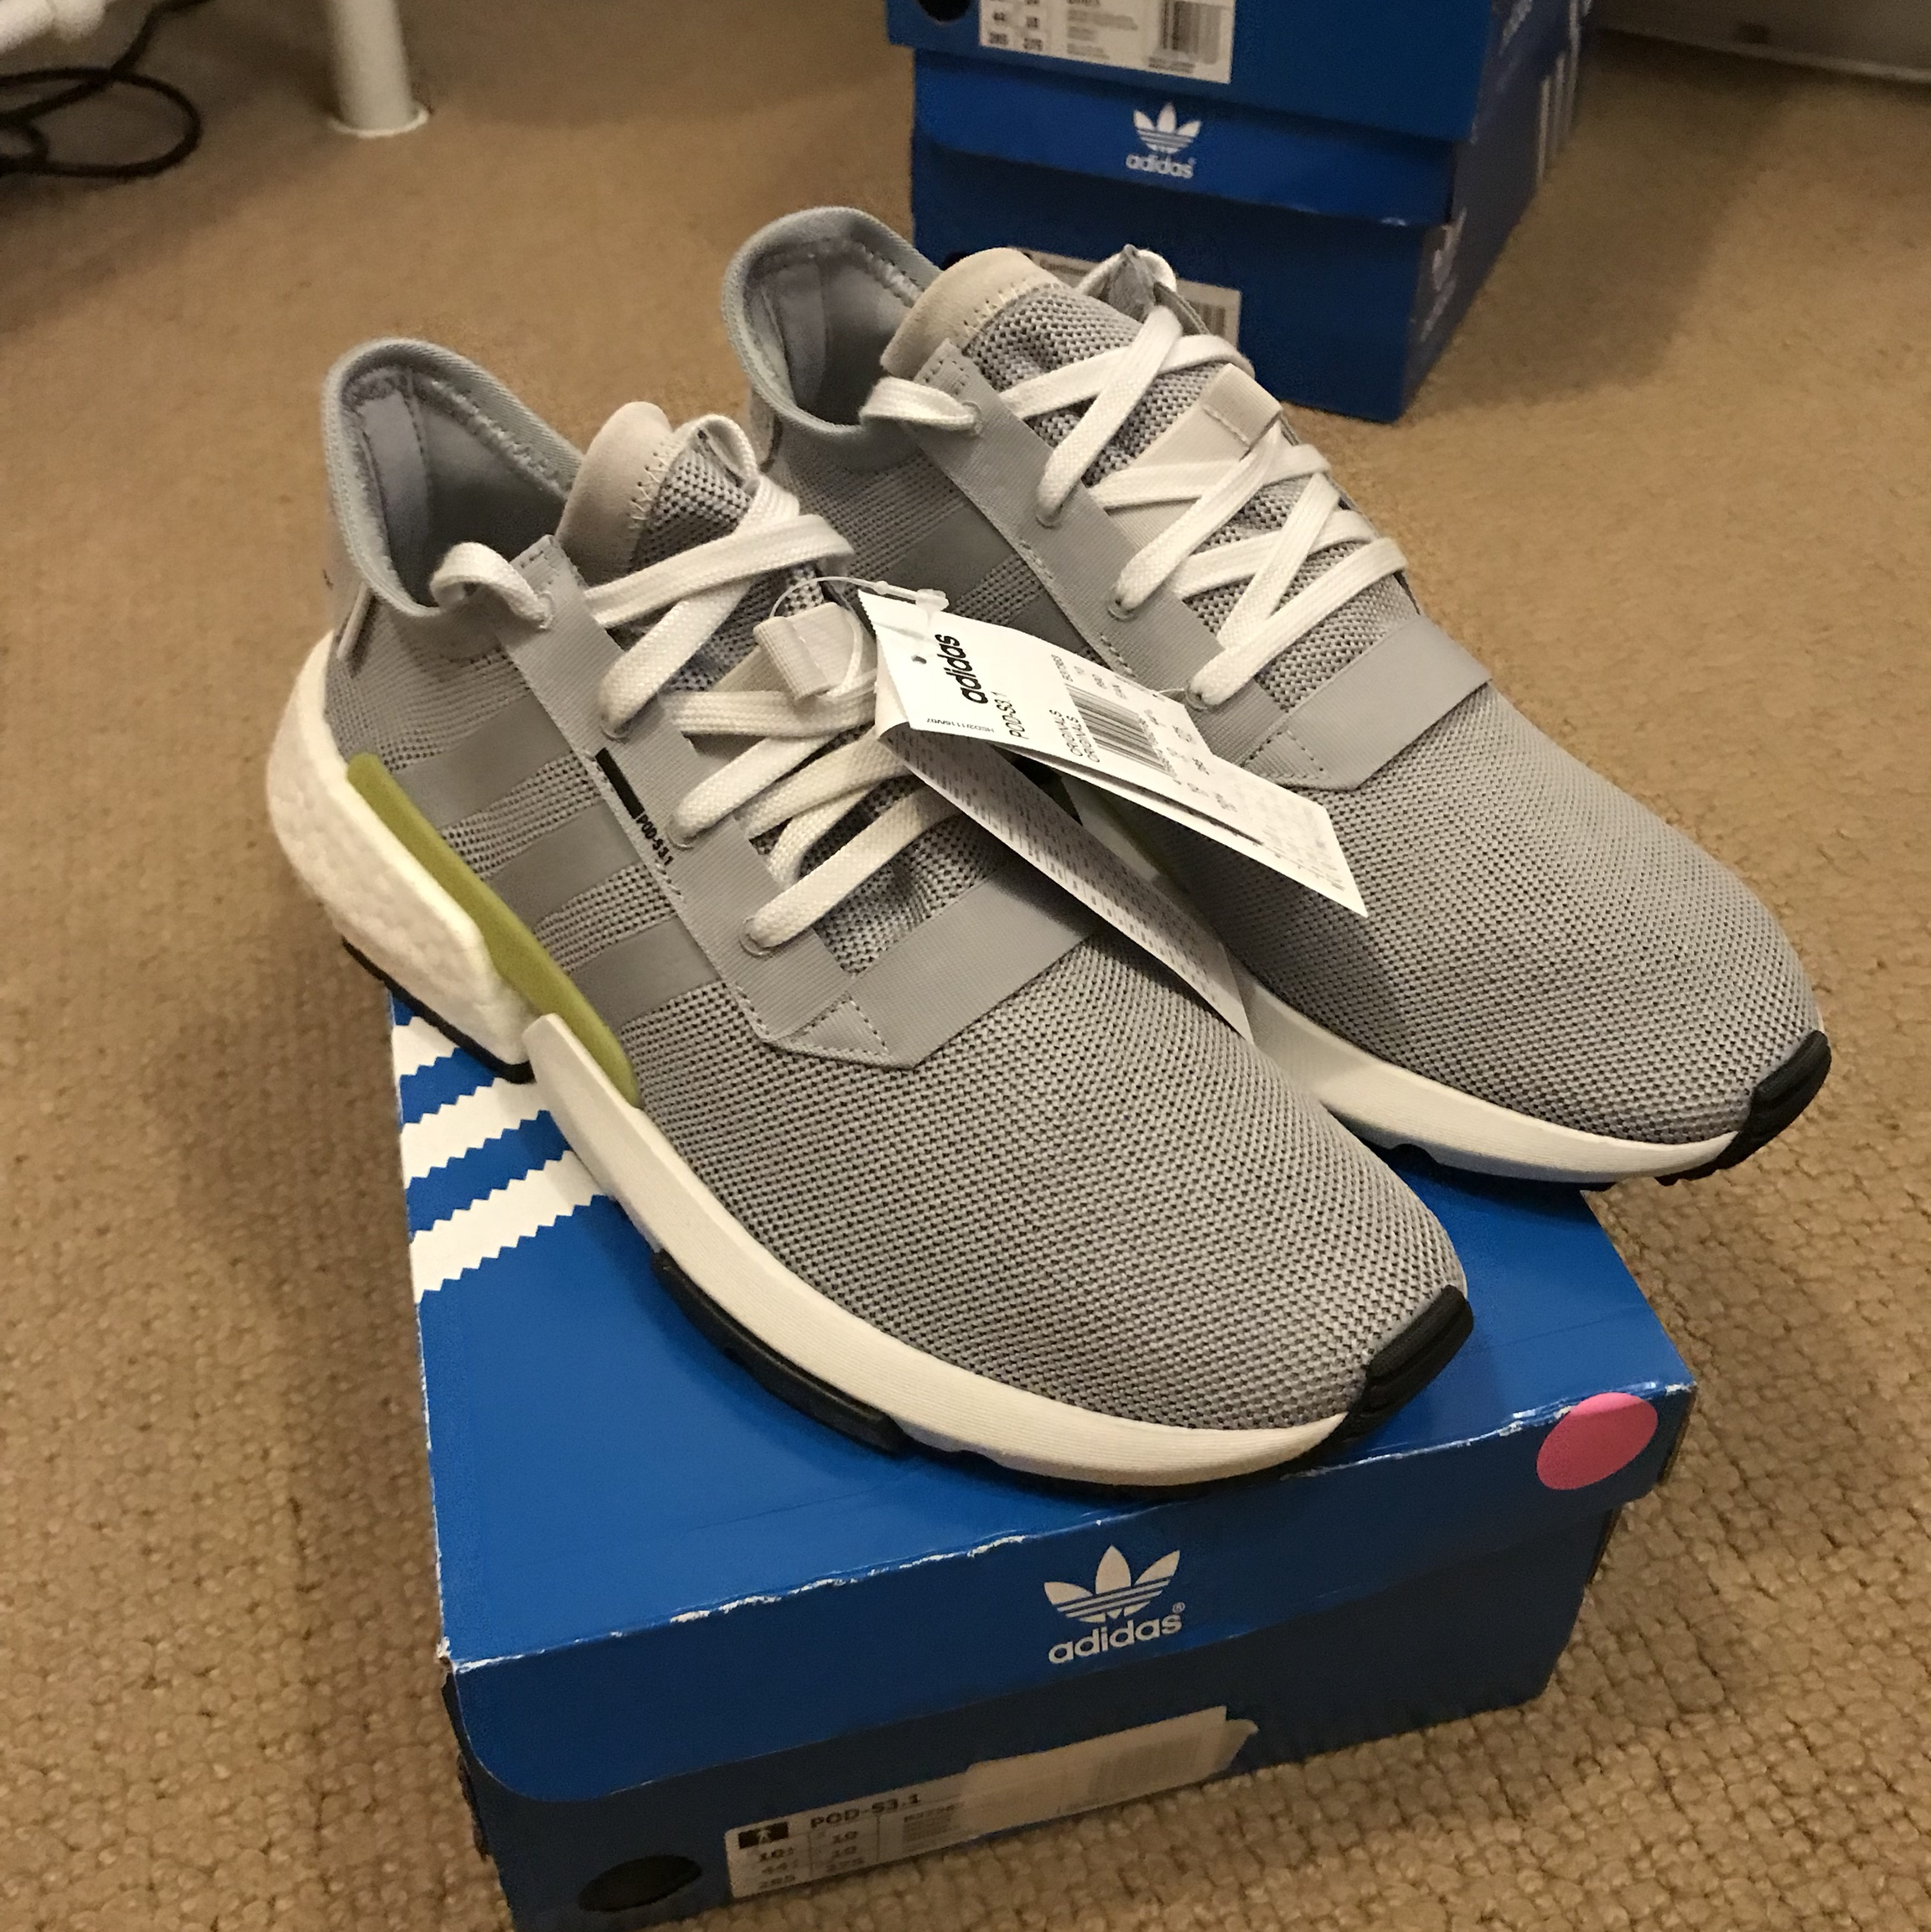 Adidas POD-S3.1 Brand new with box RRP